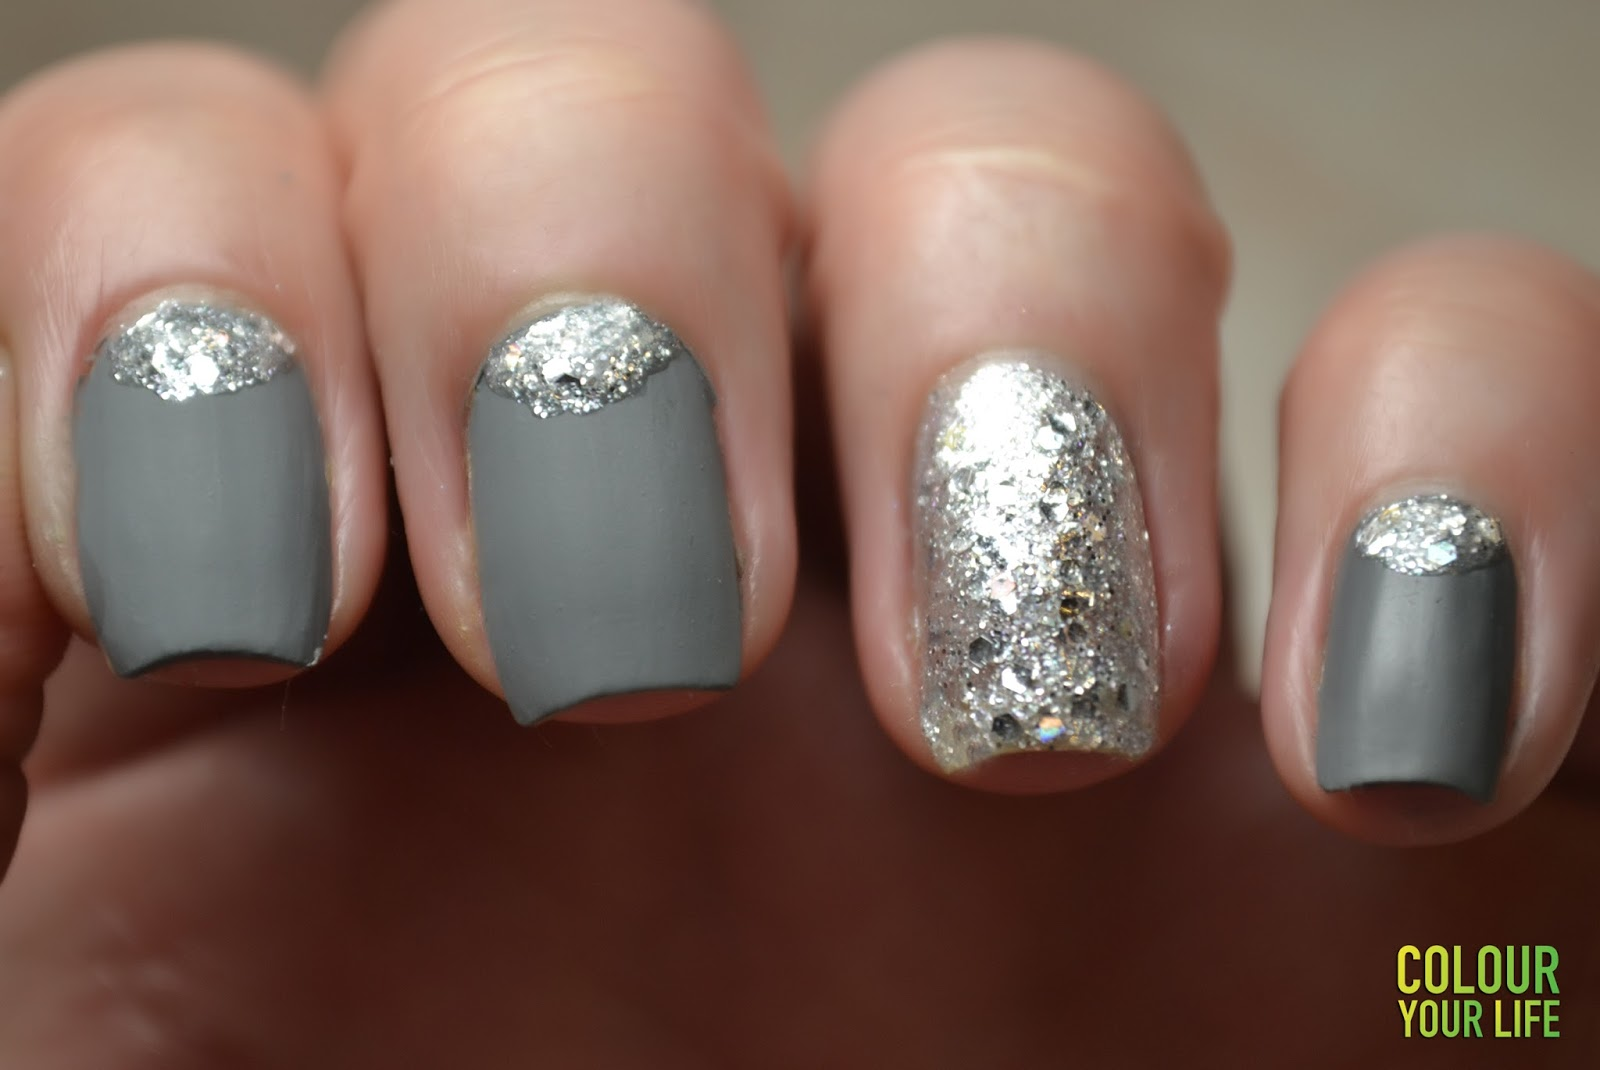 Colour your life: January\'s Nails Challenge - Ice or Silver nails